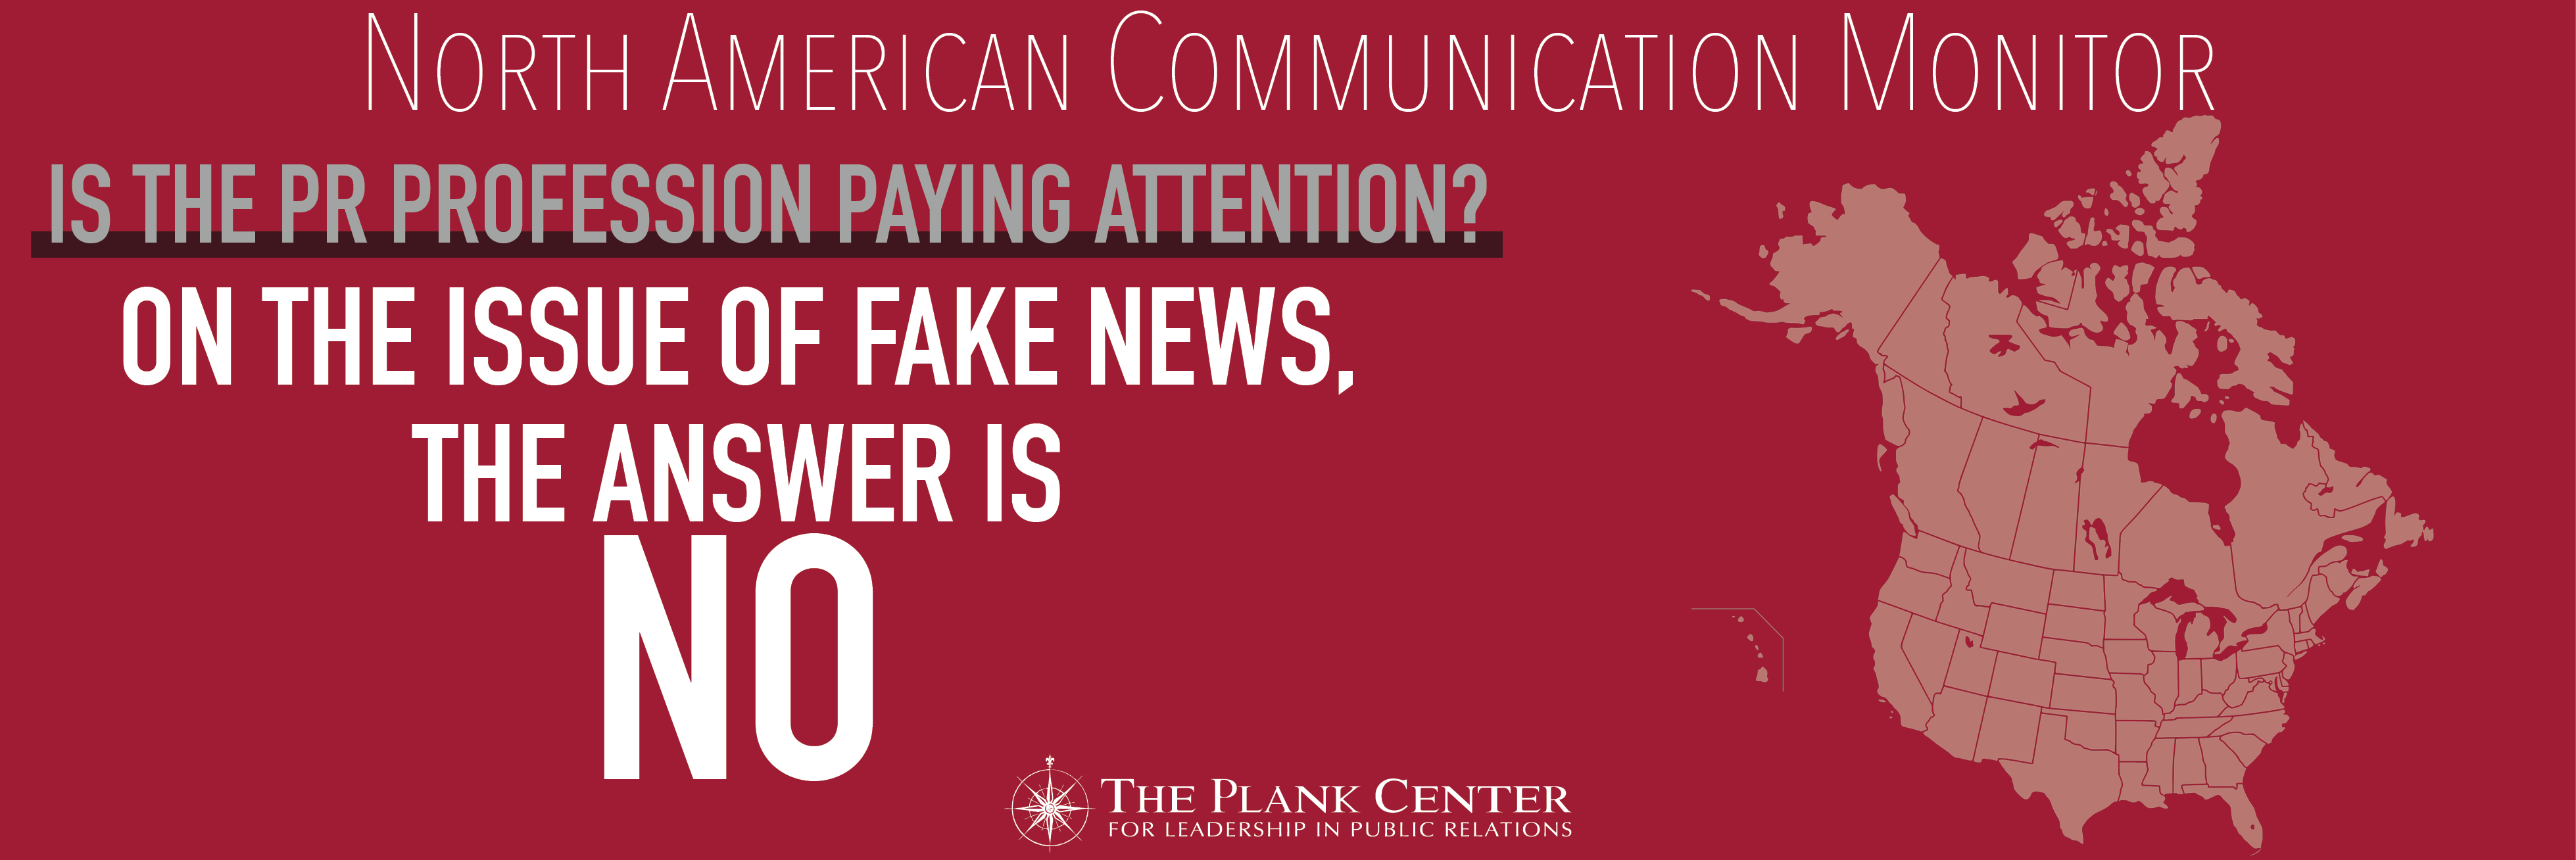 The public relations professionals are not paying attention when it comes to Fake News.